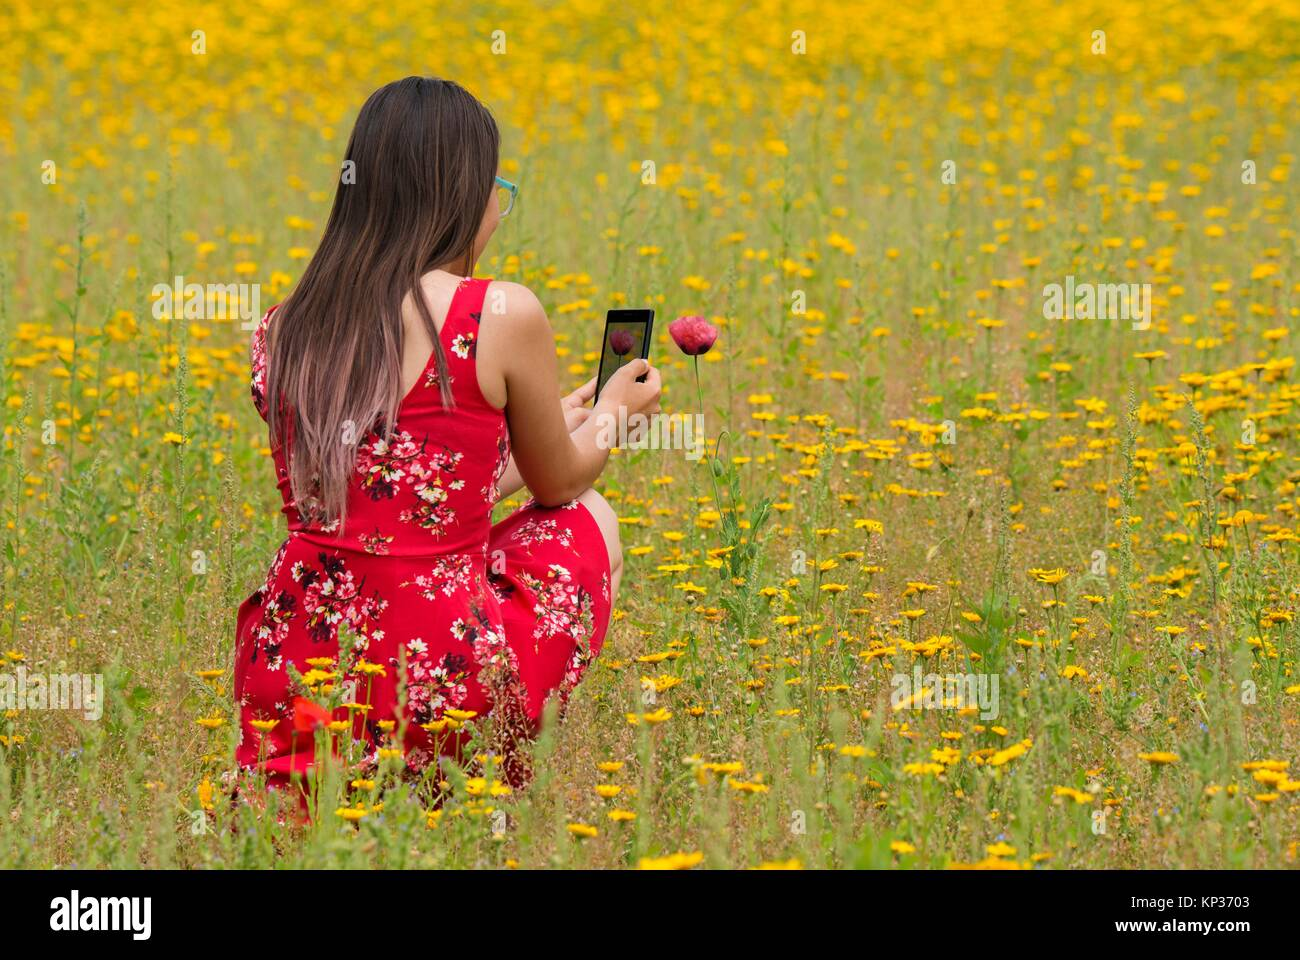 Girl with a red dress taking a photograph to a flower with a mobile in a yellow field. Stock Photo